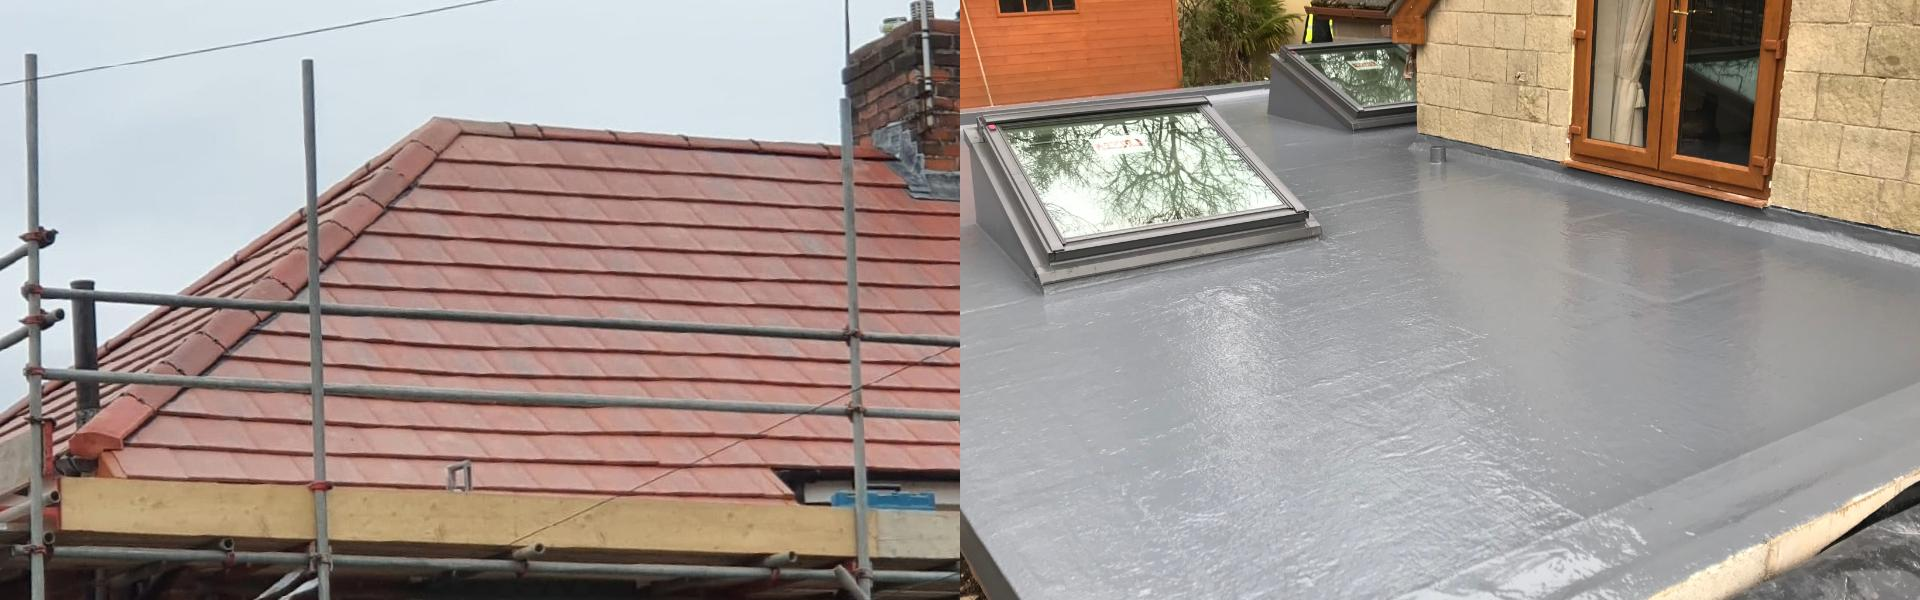 New House Roof or Roof Repair - Domestic Roofing Specialists